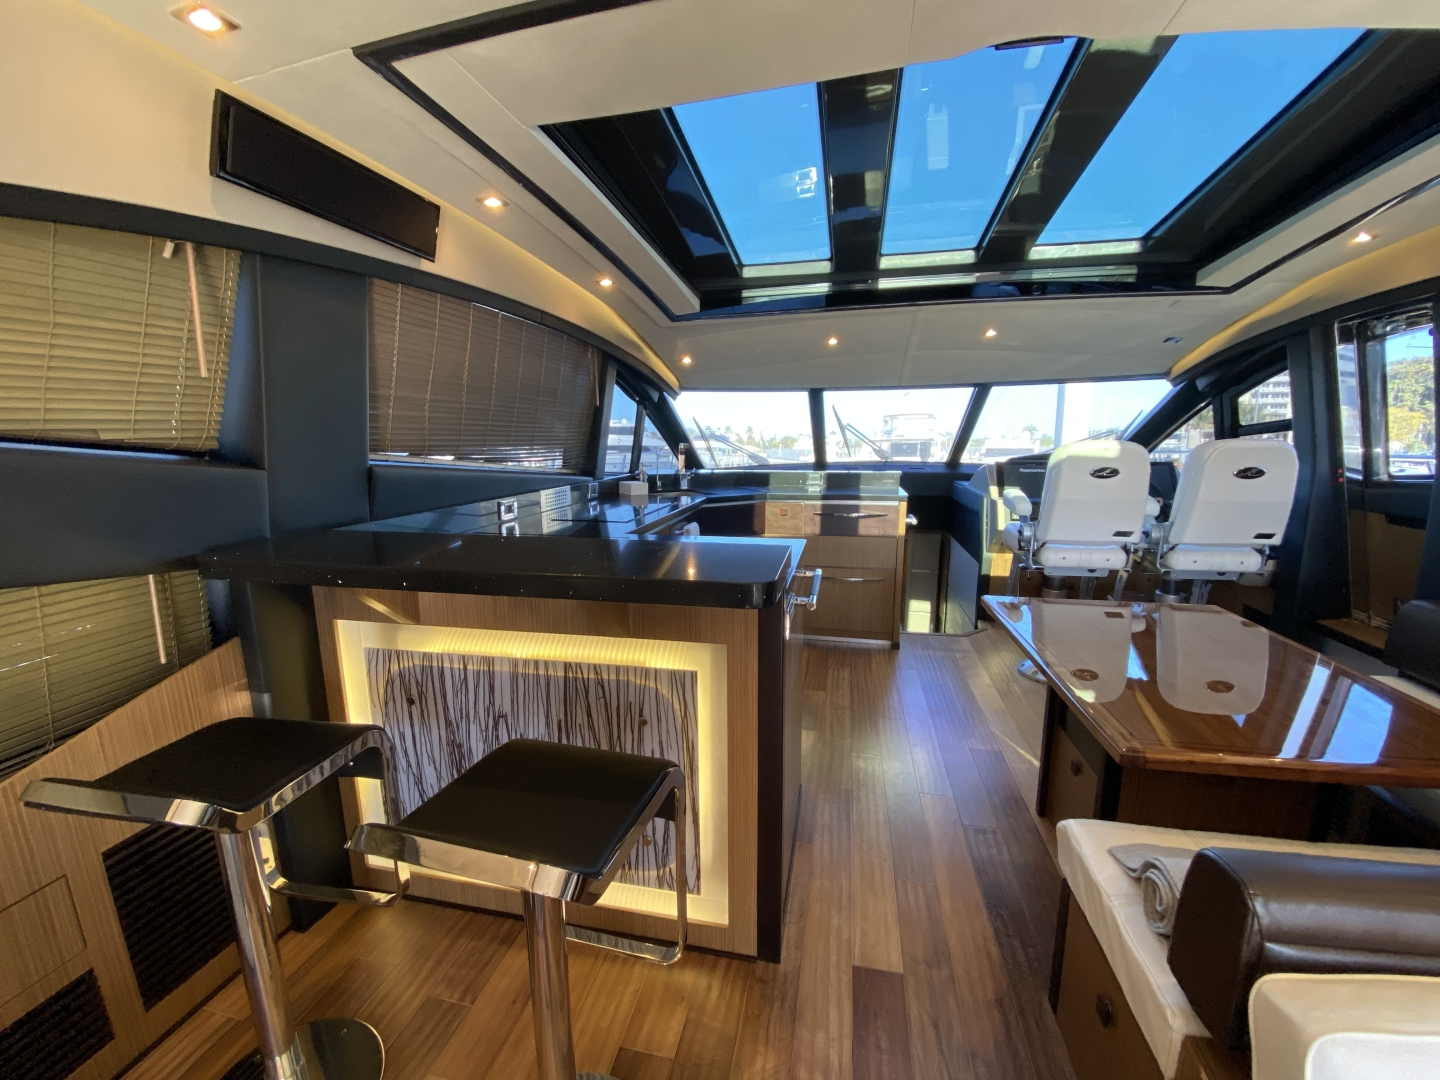 Sea Ray-L650 Express 2016-Cozy Fort Lauderdale-Florida-United States-2016 Sea Ray L650 Galley-1367656 | Thumbnail